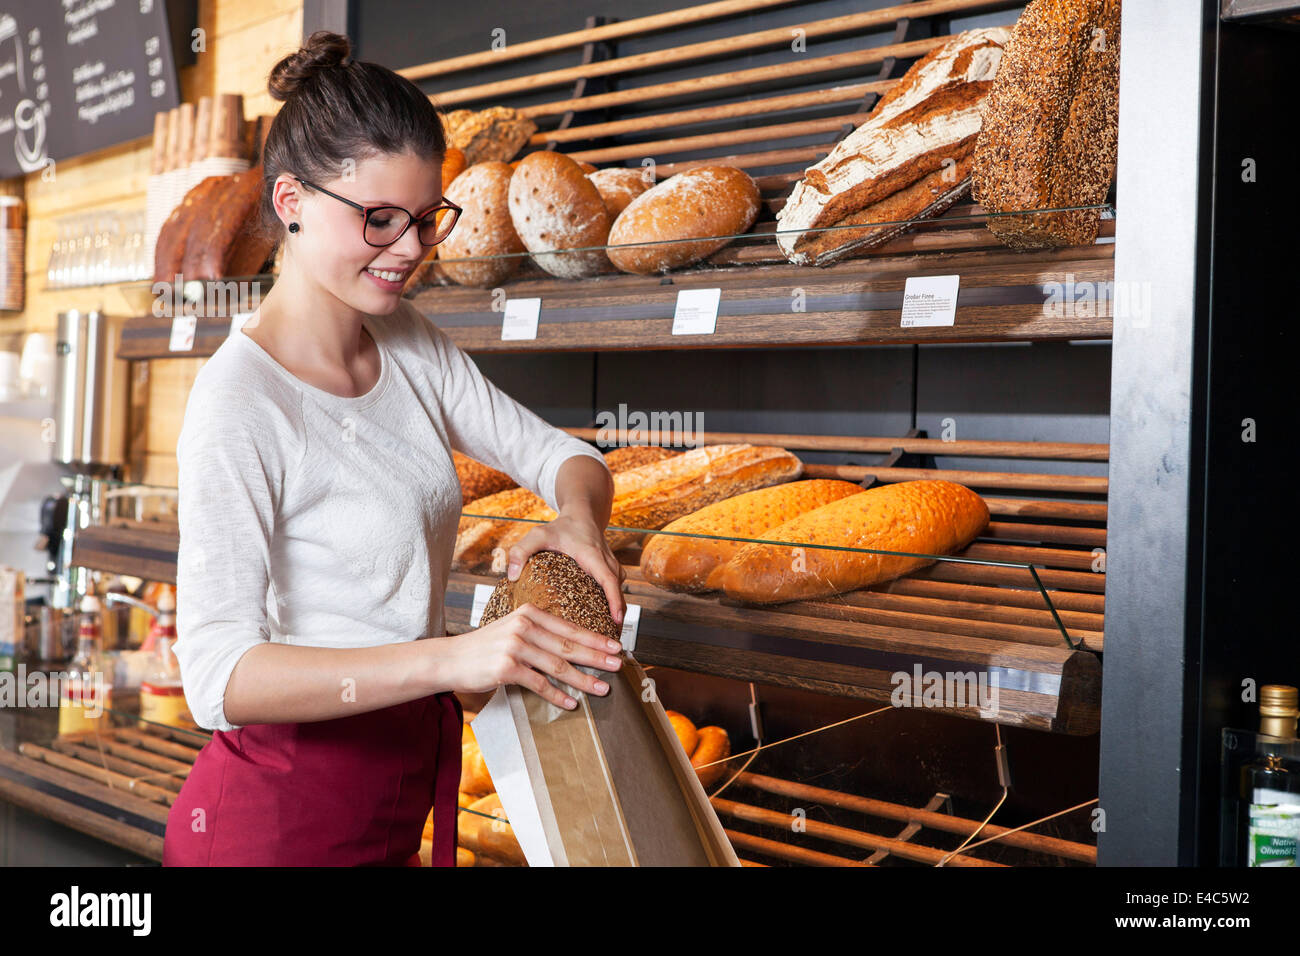 Shop assistant in bakery packing bread into a bag - Stock Image